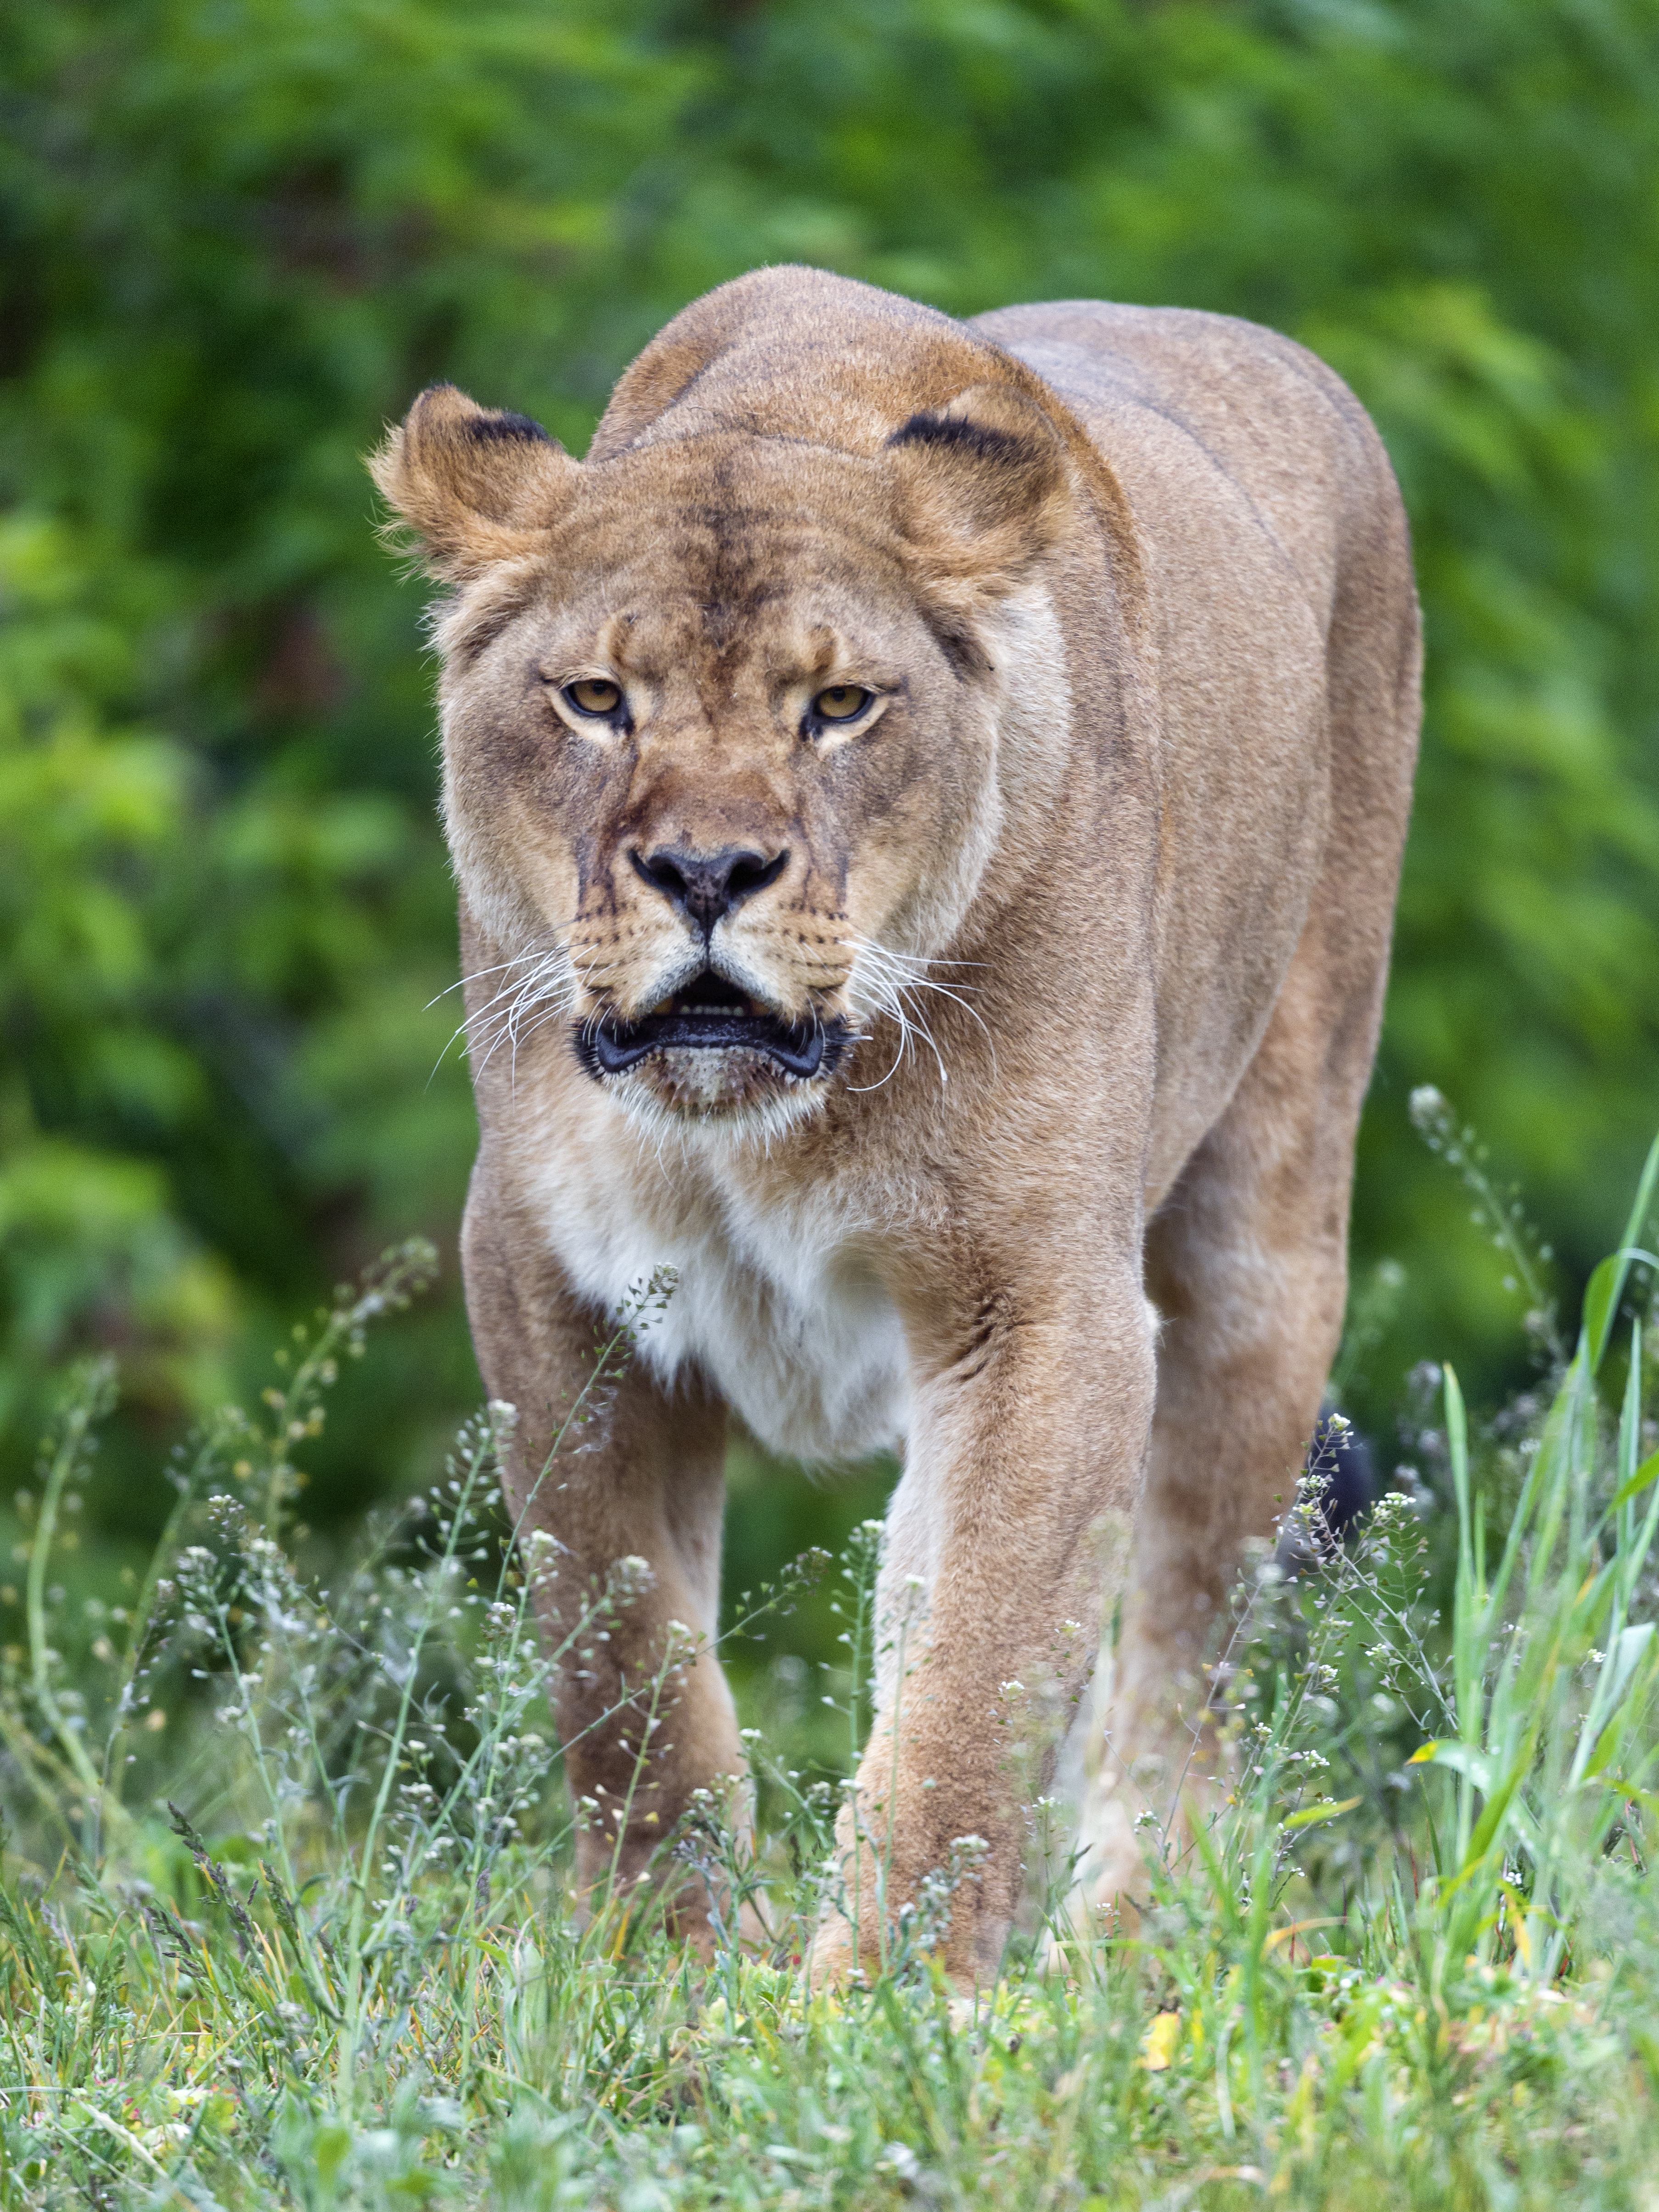 148560 download wallpaper Animals, Lioness, Big Cat, Predator, Wildlife screensavers and pictures for free